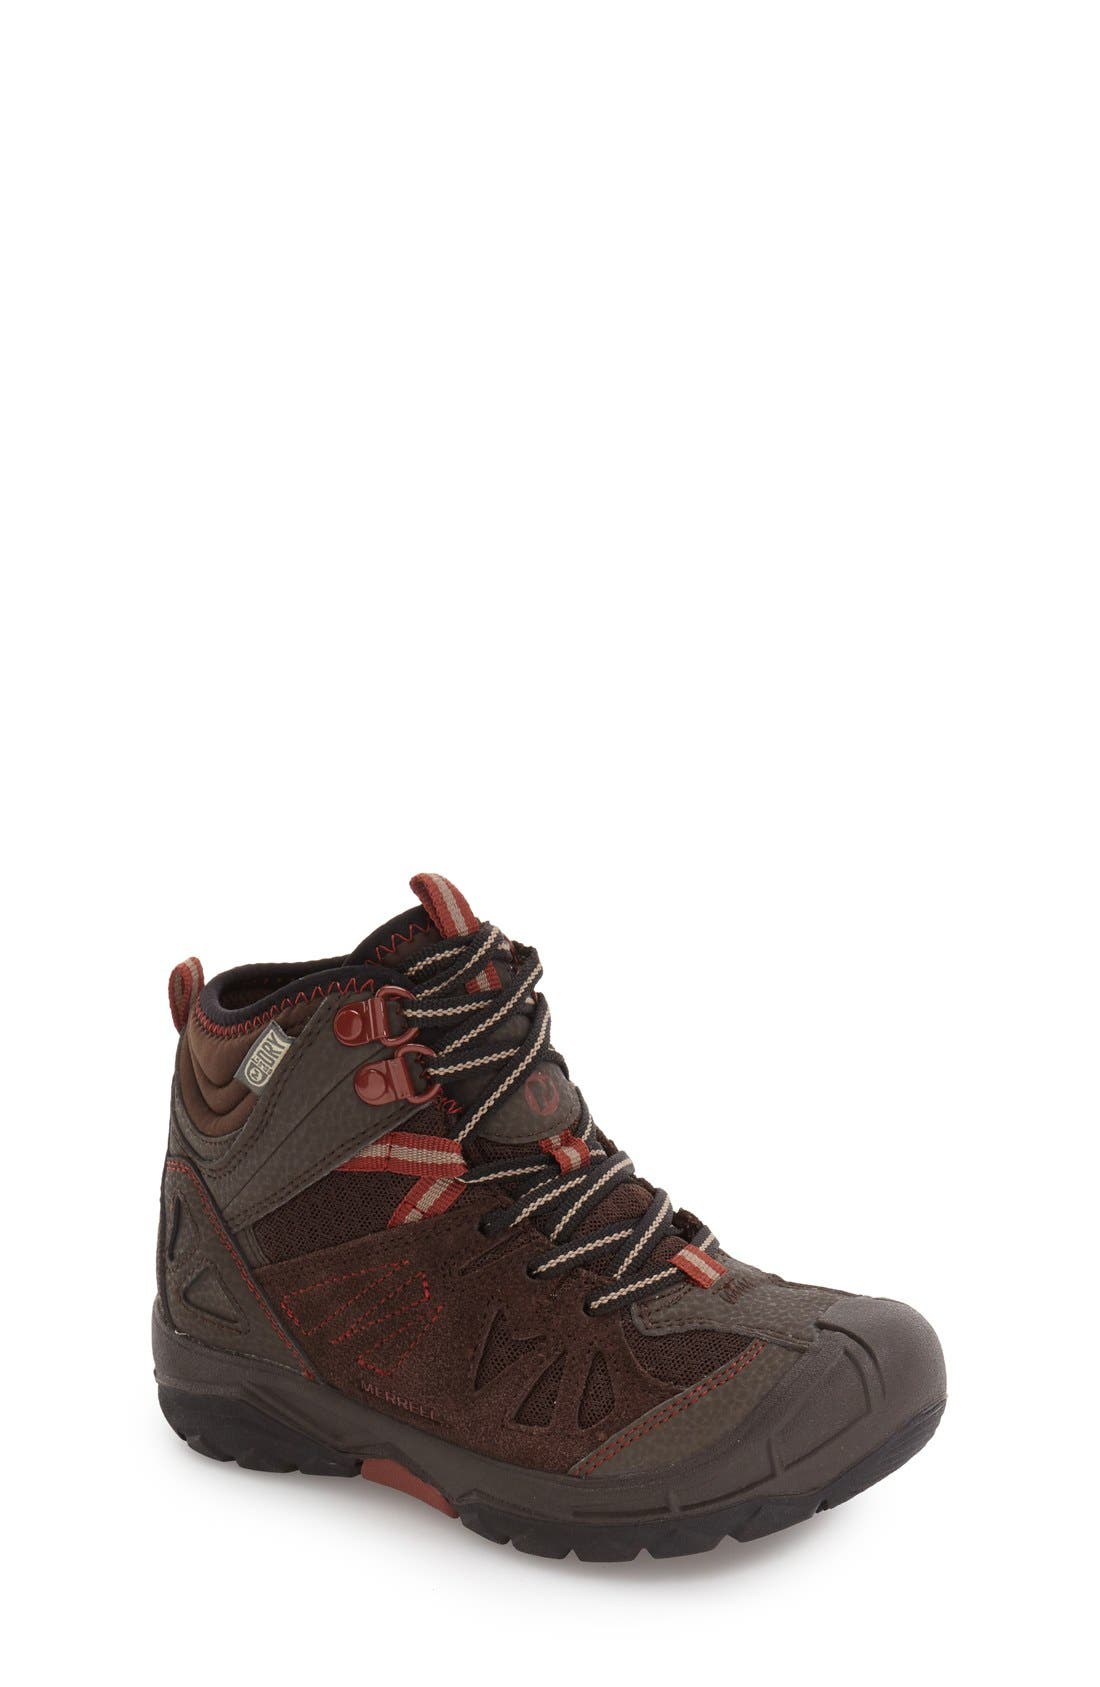 Alternate Image 1 Selected - Merrell 'Capra' Mid Waterproof Hiking Shoe (Toddler, Little Kid & Big Kid)